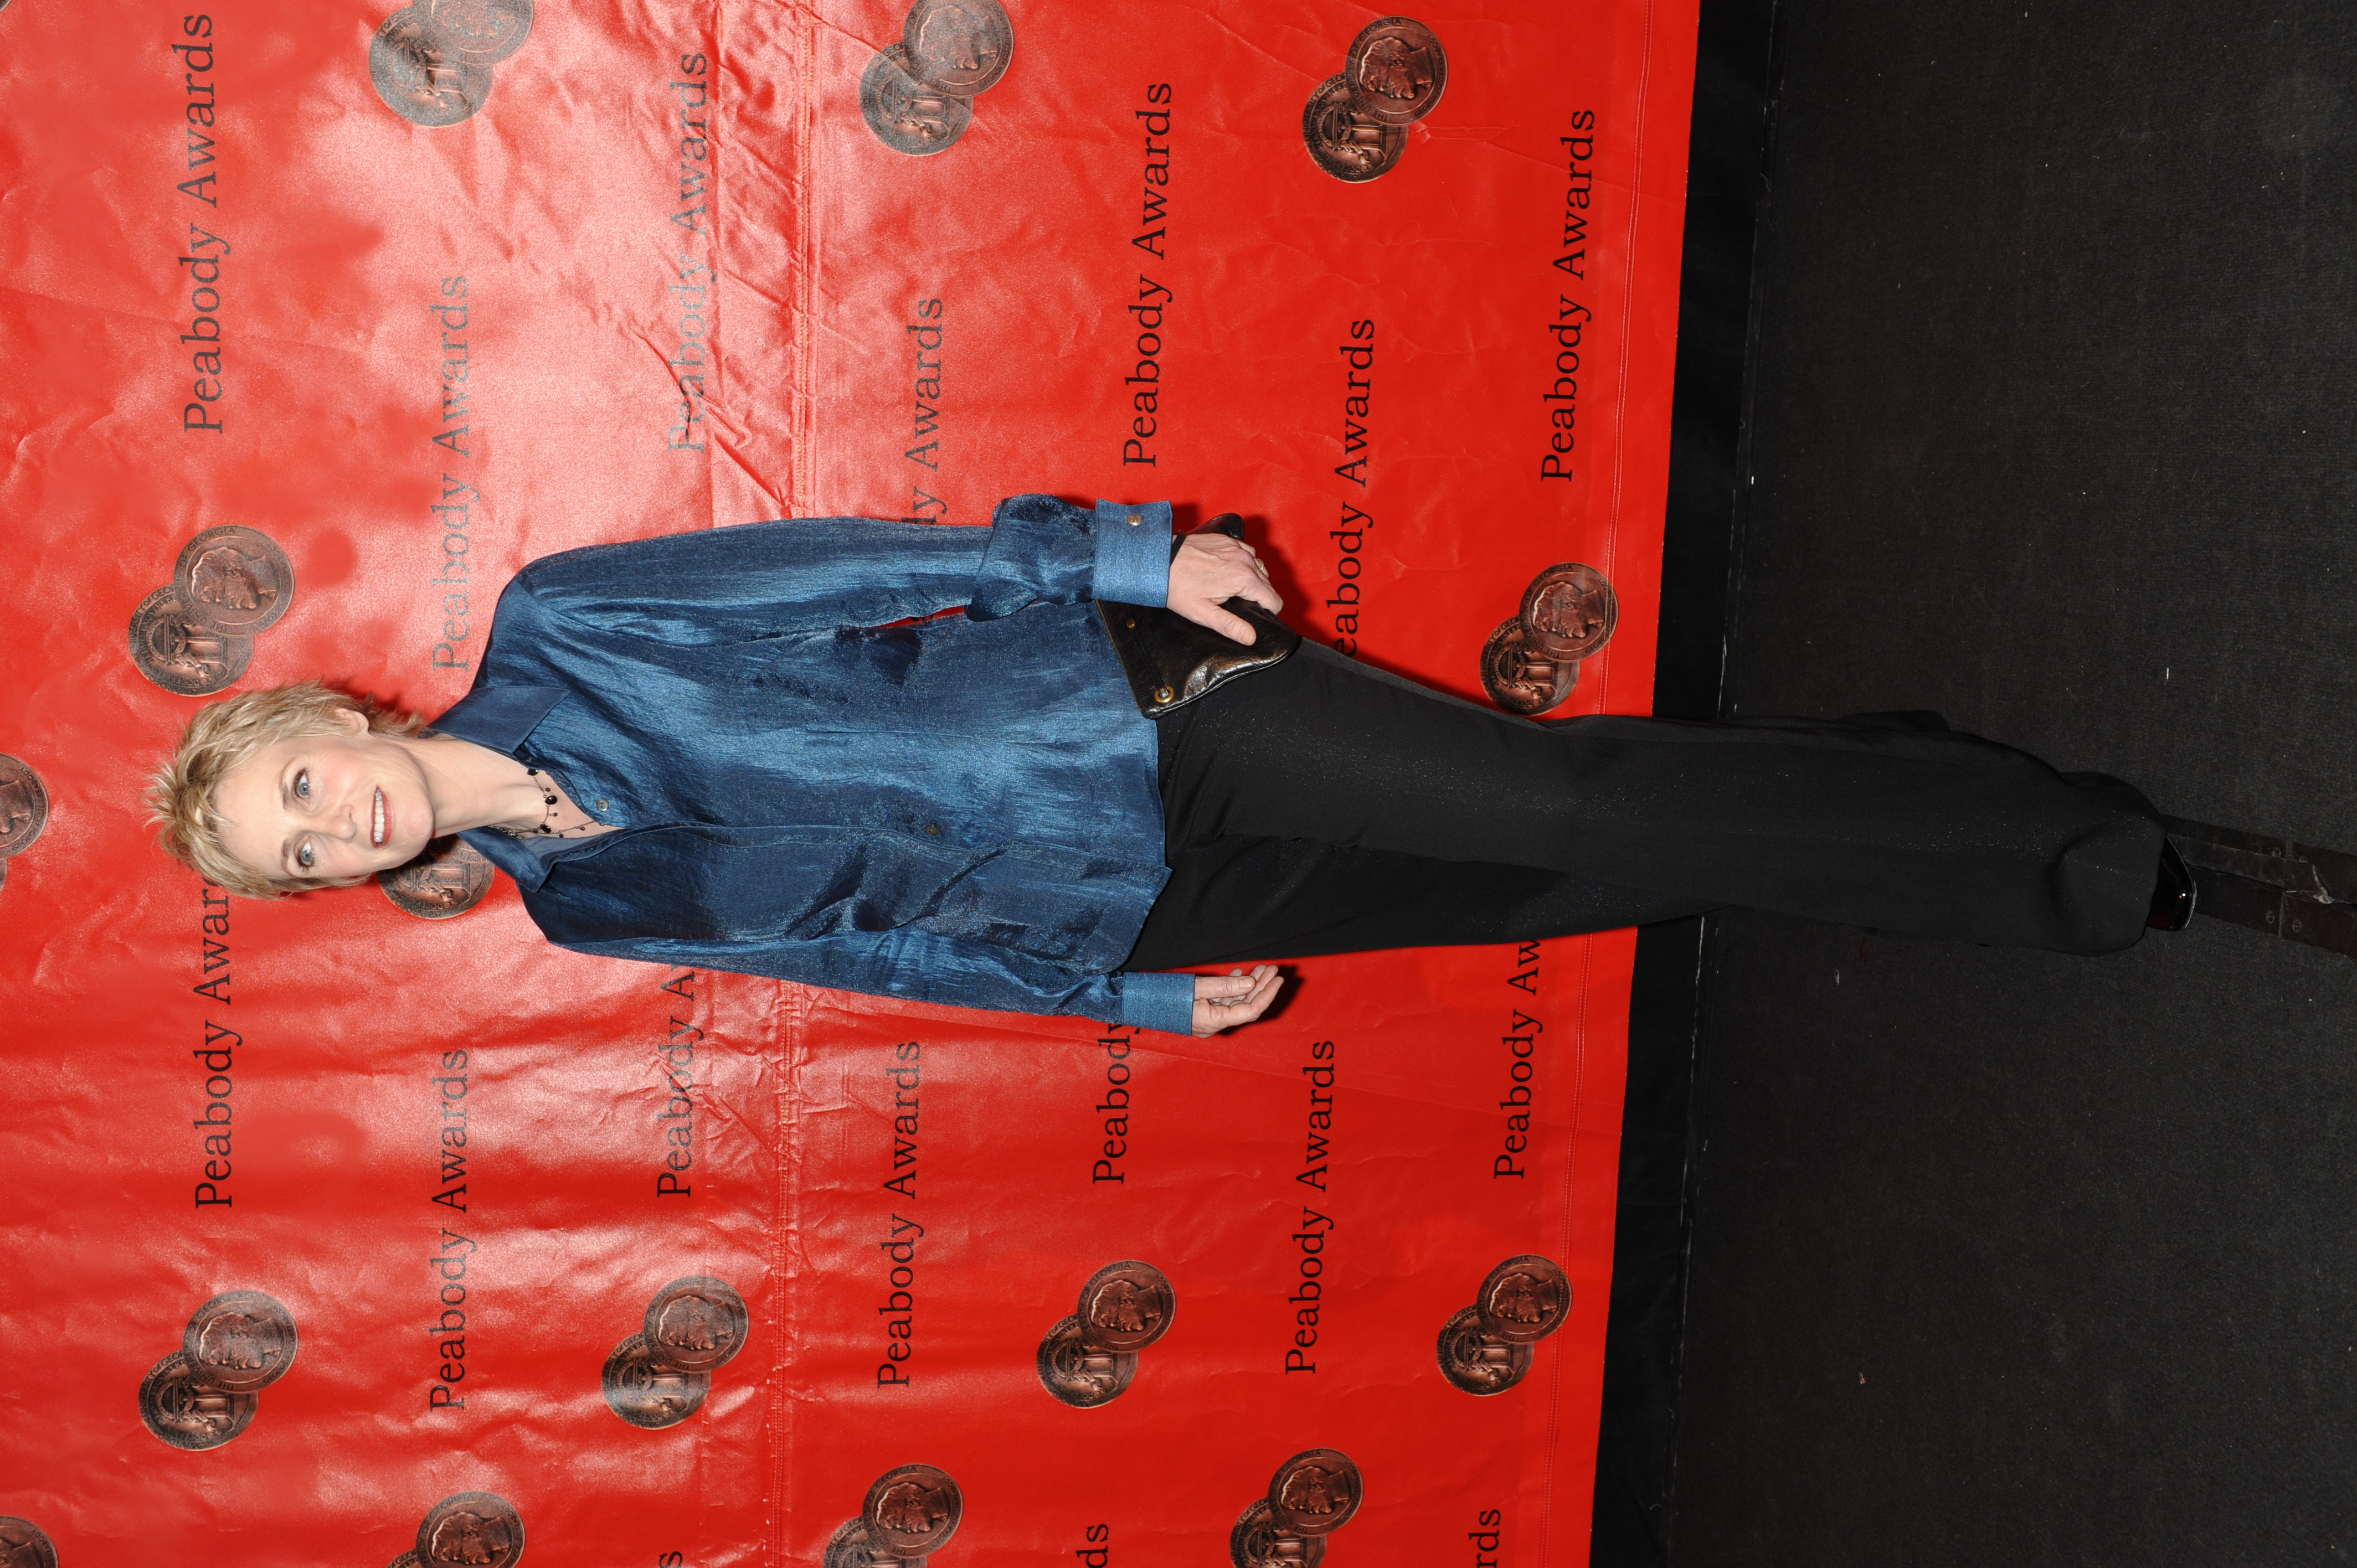 jane-lynch-at-the-69th-annual-peabody-awards